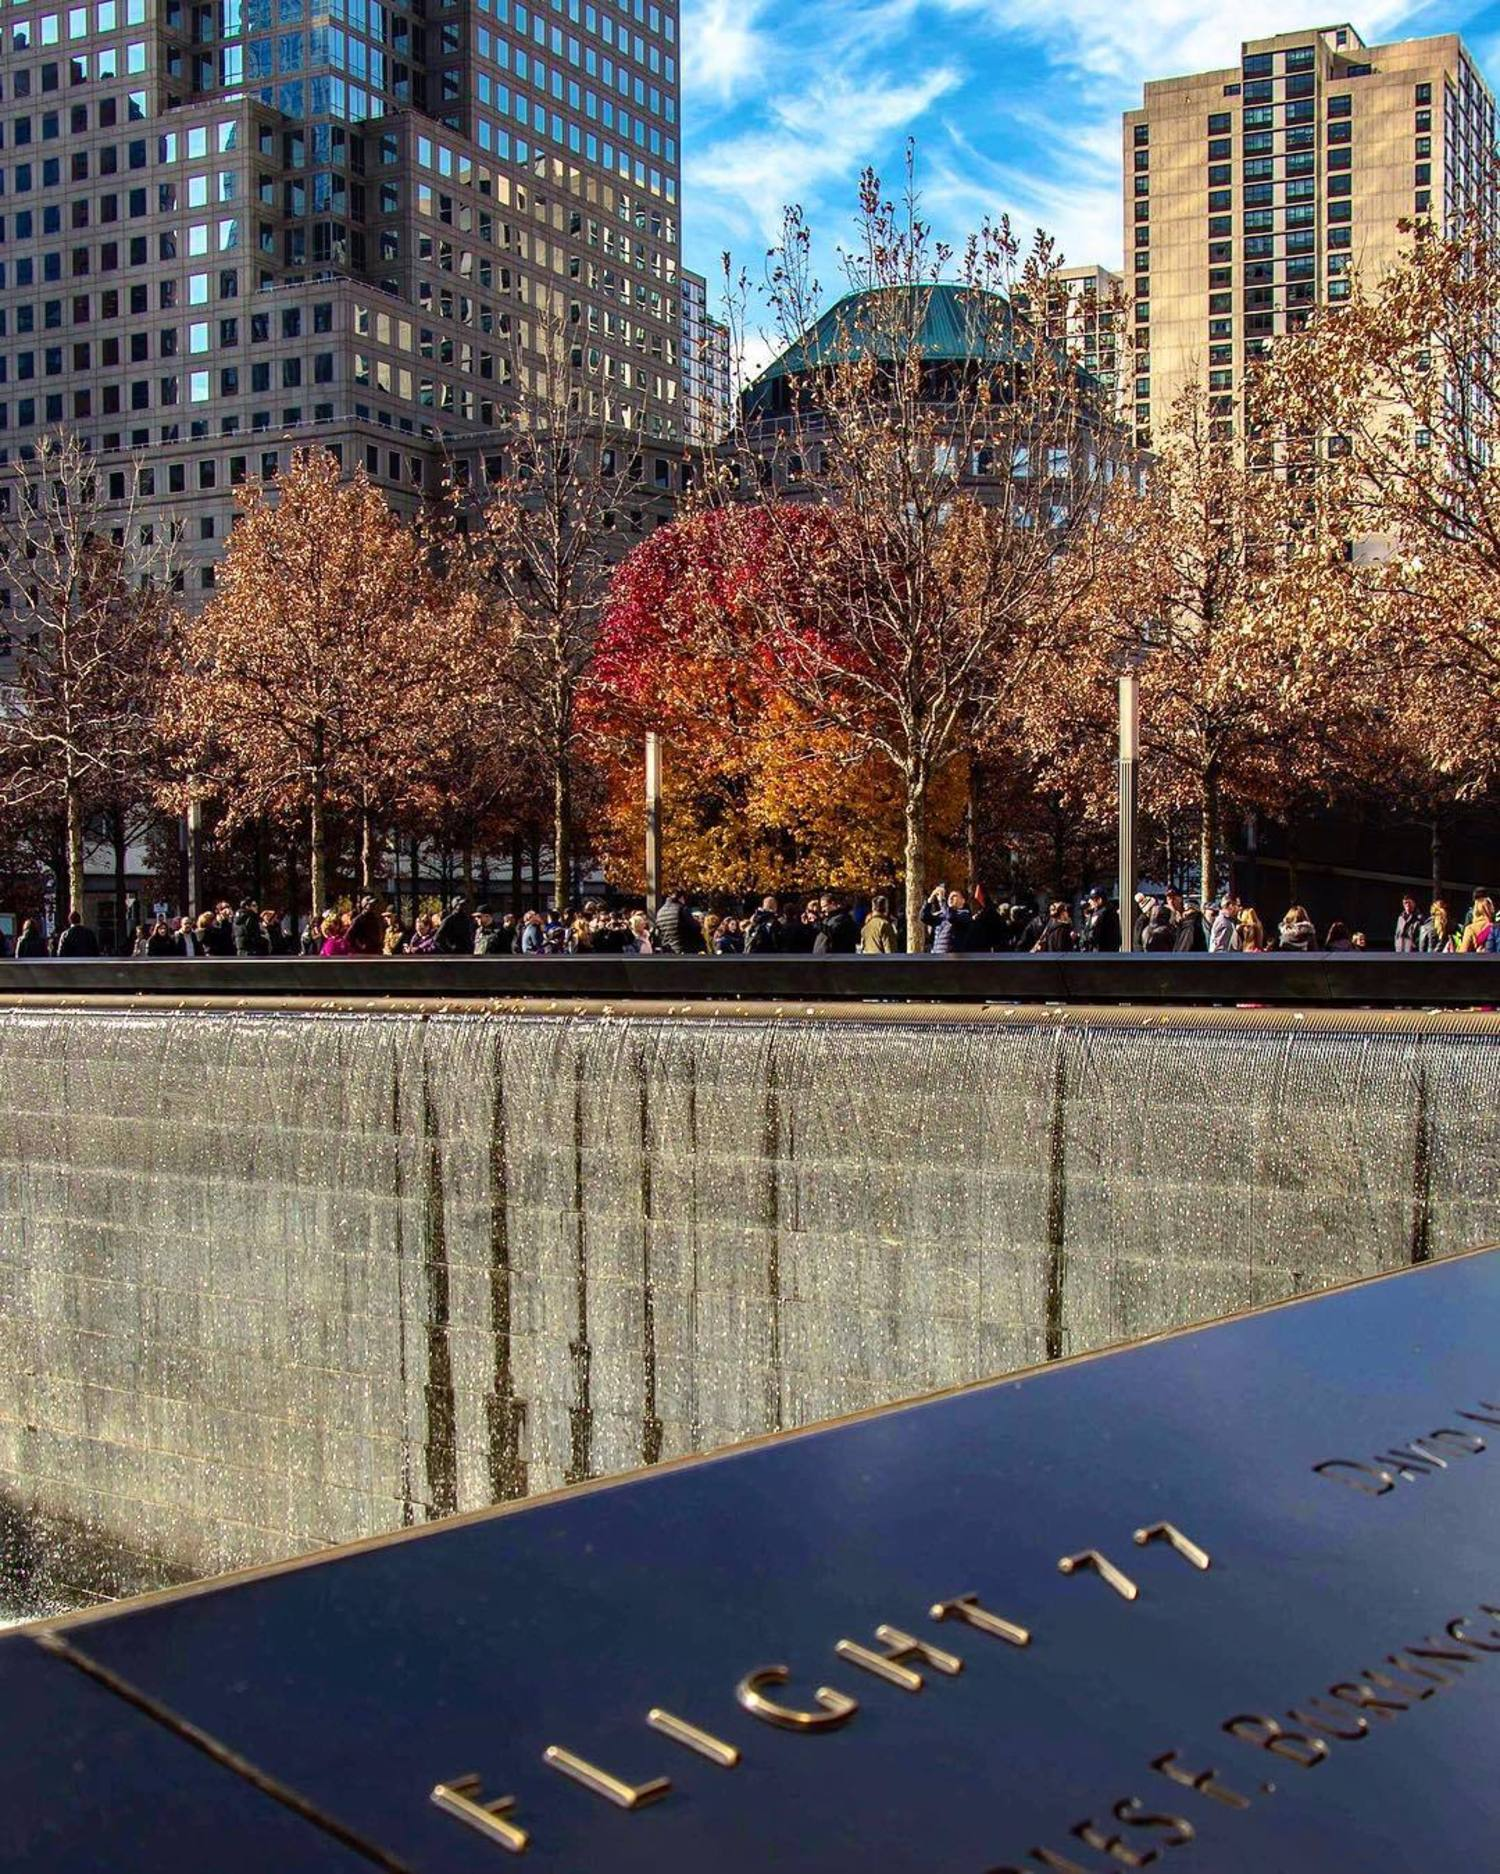 "The beautiful, inspiring Survivor Tree stands in it's Autumn glory ❤️🍁🍂 This is the waterfall where World Trade Center 2 once stood.  A Callery pear tree became known as the ""Survivor Tree"" after enduring the September 11, 2001 terror attacks at the World Trade Center. In October 2001, the tree was discovered at Ground Zero severely damaged, with snapped roots and burned and broken branches. The tree was removed from the rubble and placed in the care of the New York City Department of Parks and Recreation. After its recovery and rehabilitation, the tree was returned to the Memorial in 2010. New, smooth limbs extended from the gnarled stumps, creating a visible demarcation between the tree's past and present. Today, the tree stands as a living reminder of resilience, survival and rebirth."